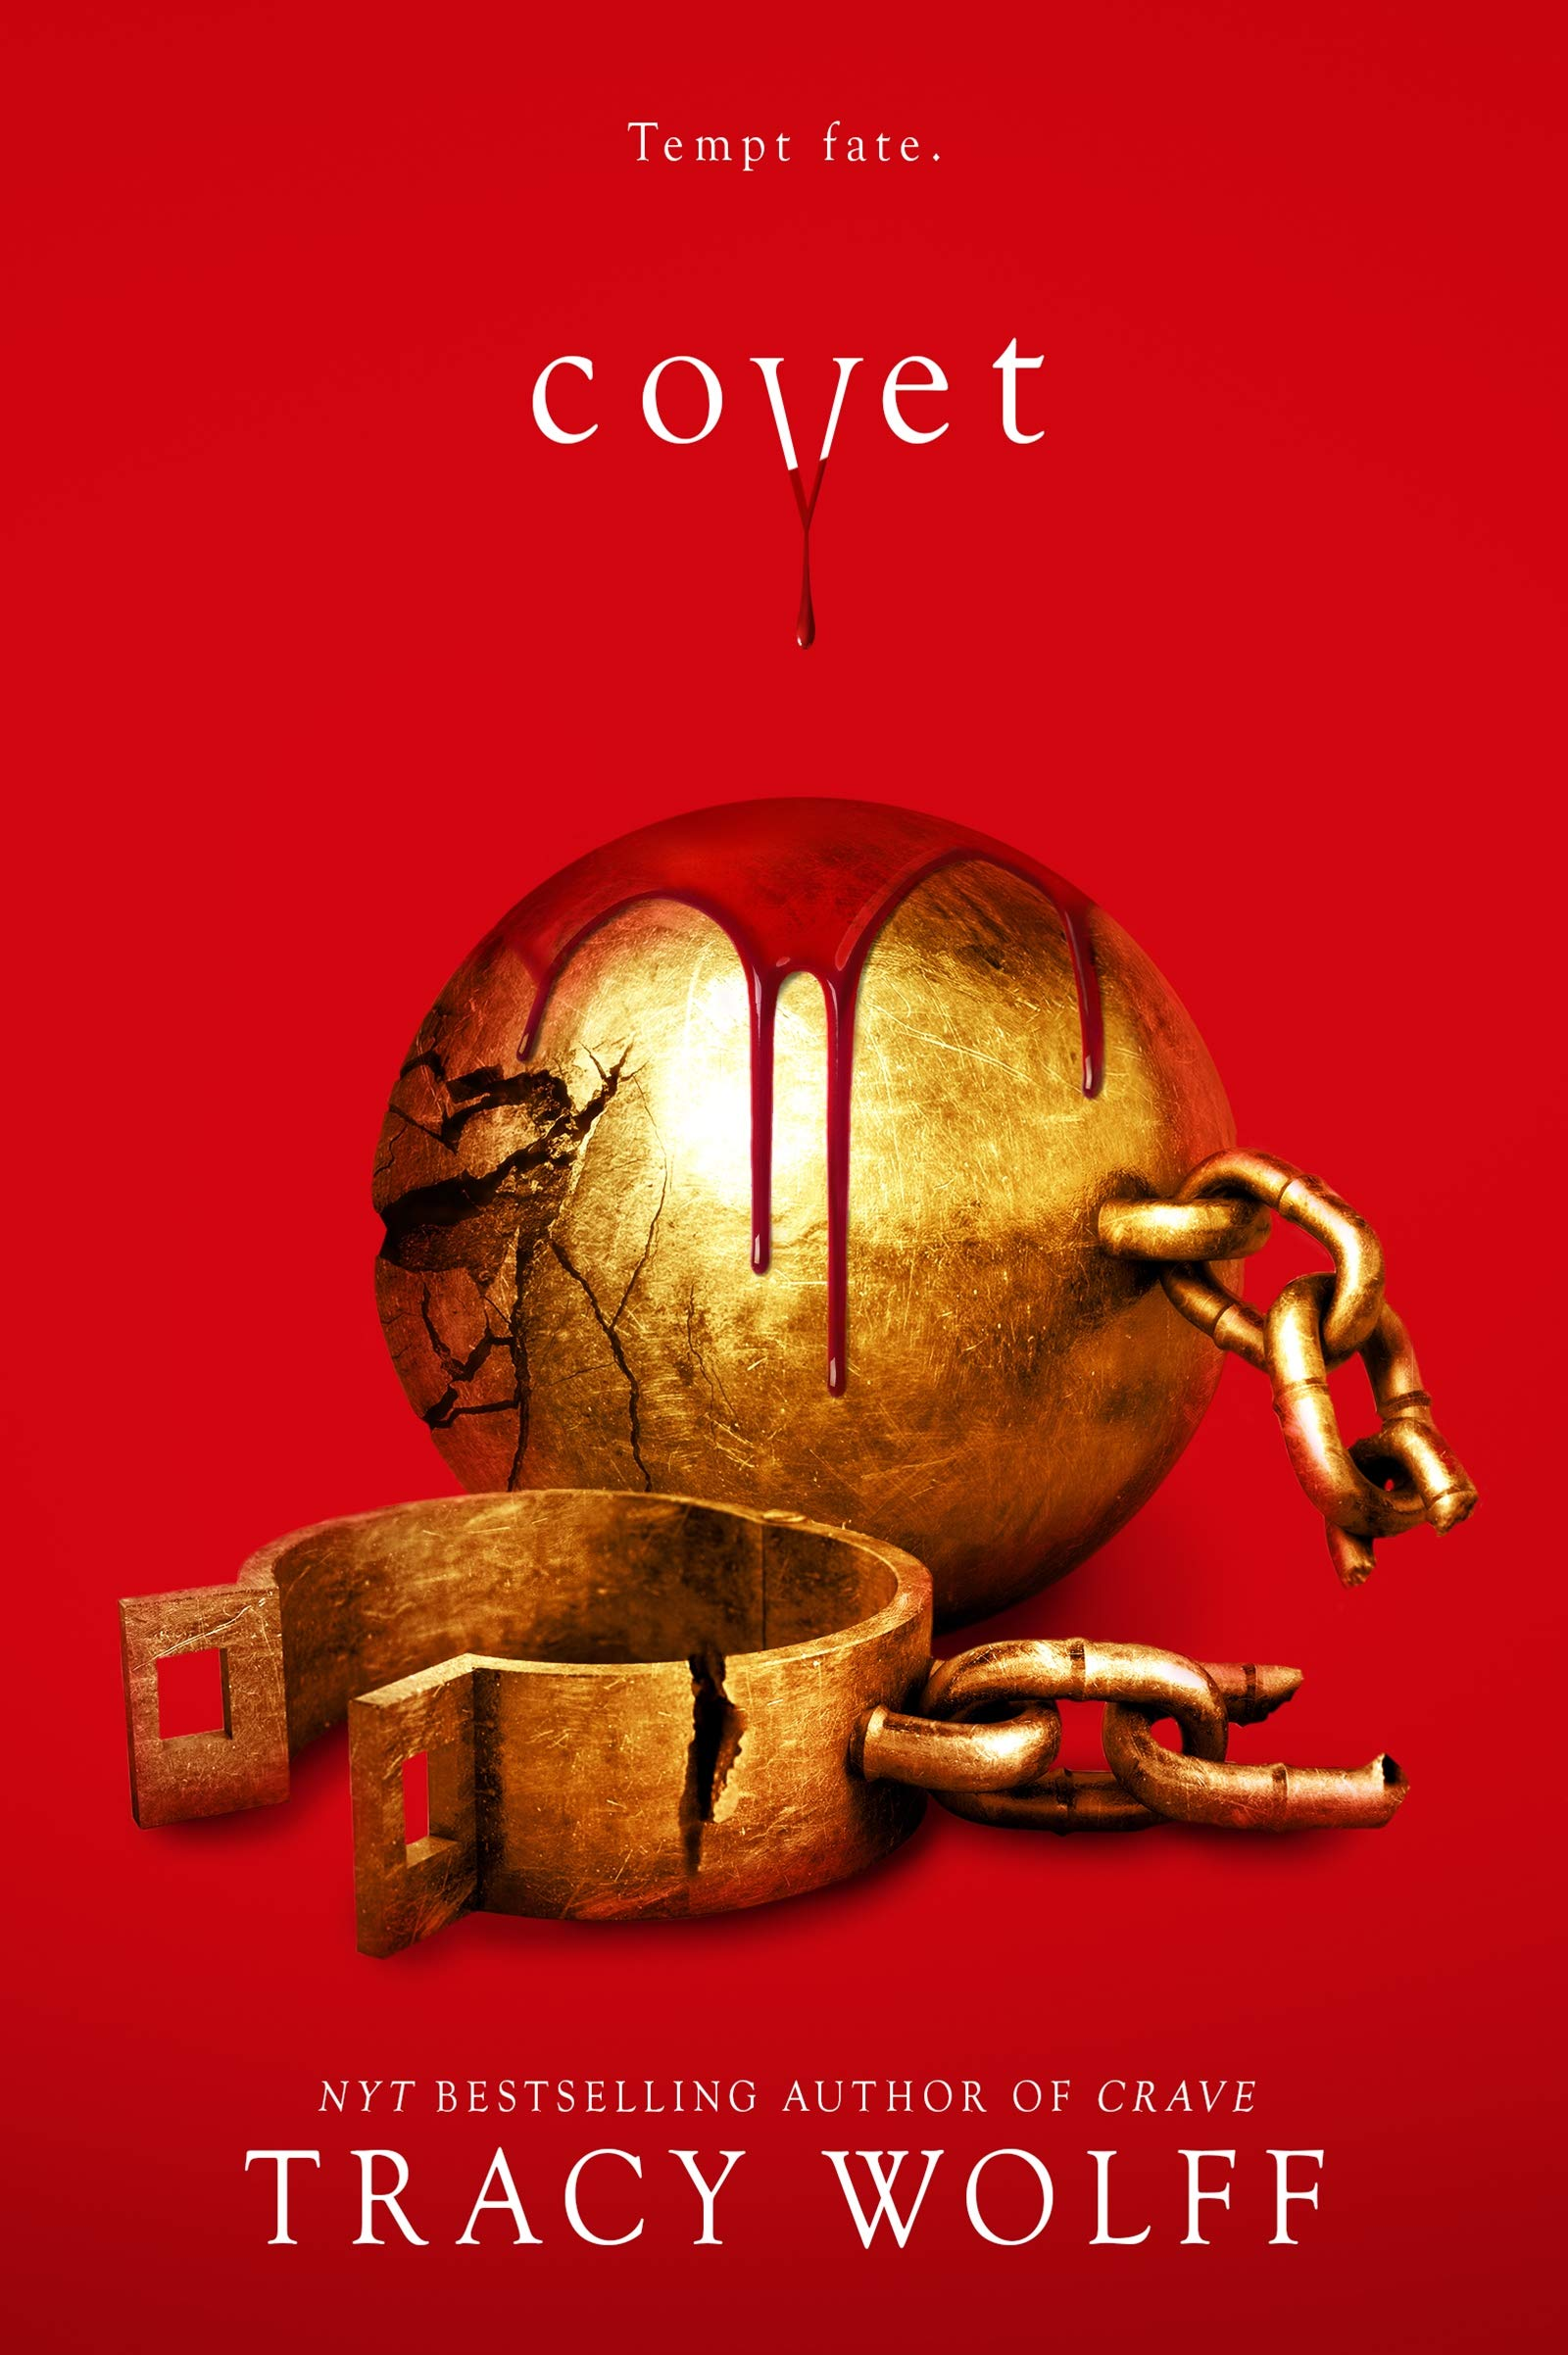 Blog Tour & Giveaway: Covet by Tracy Wolff